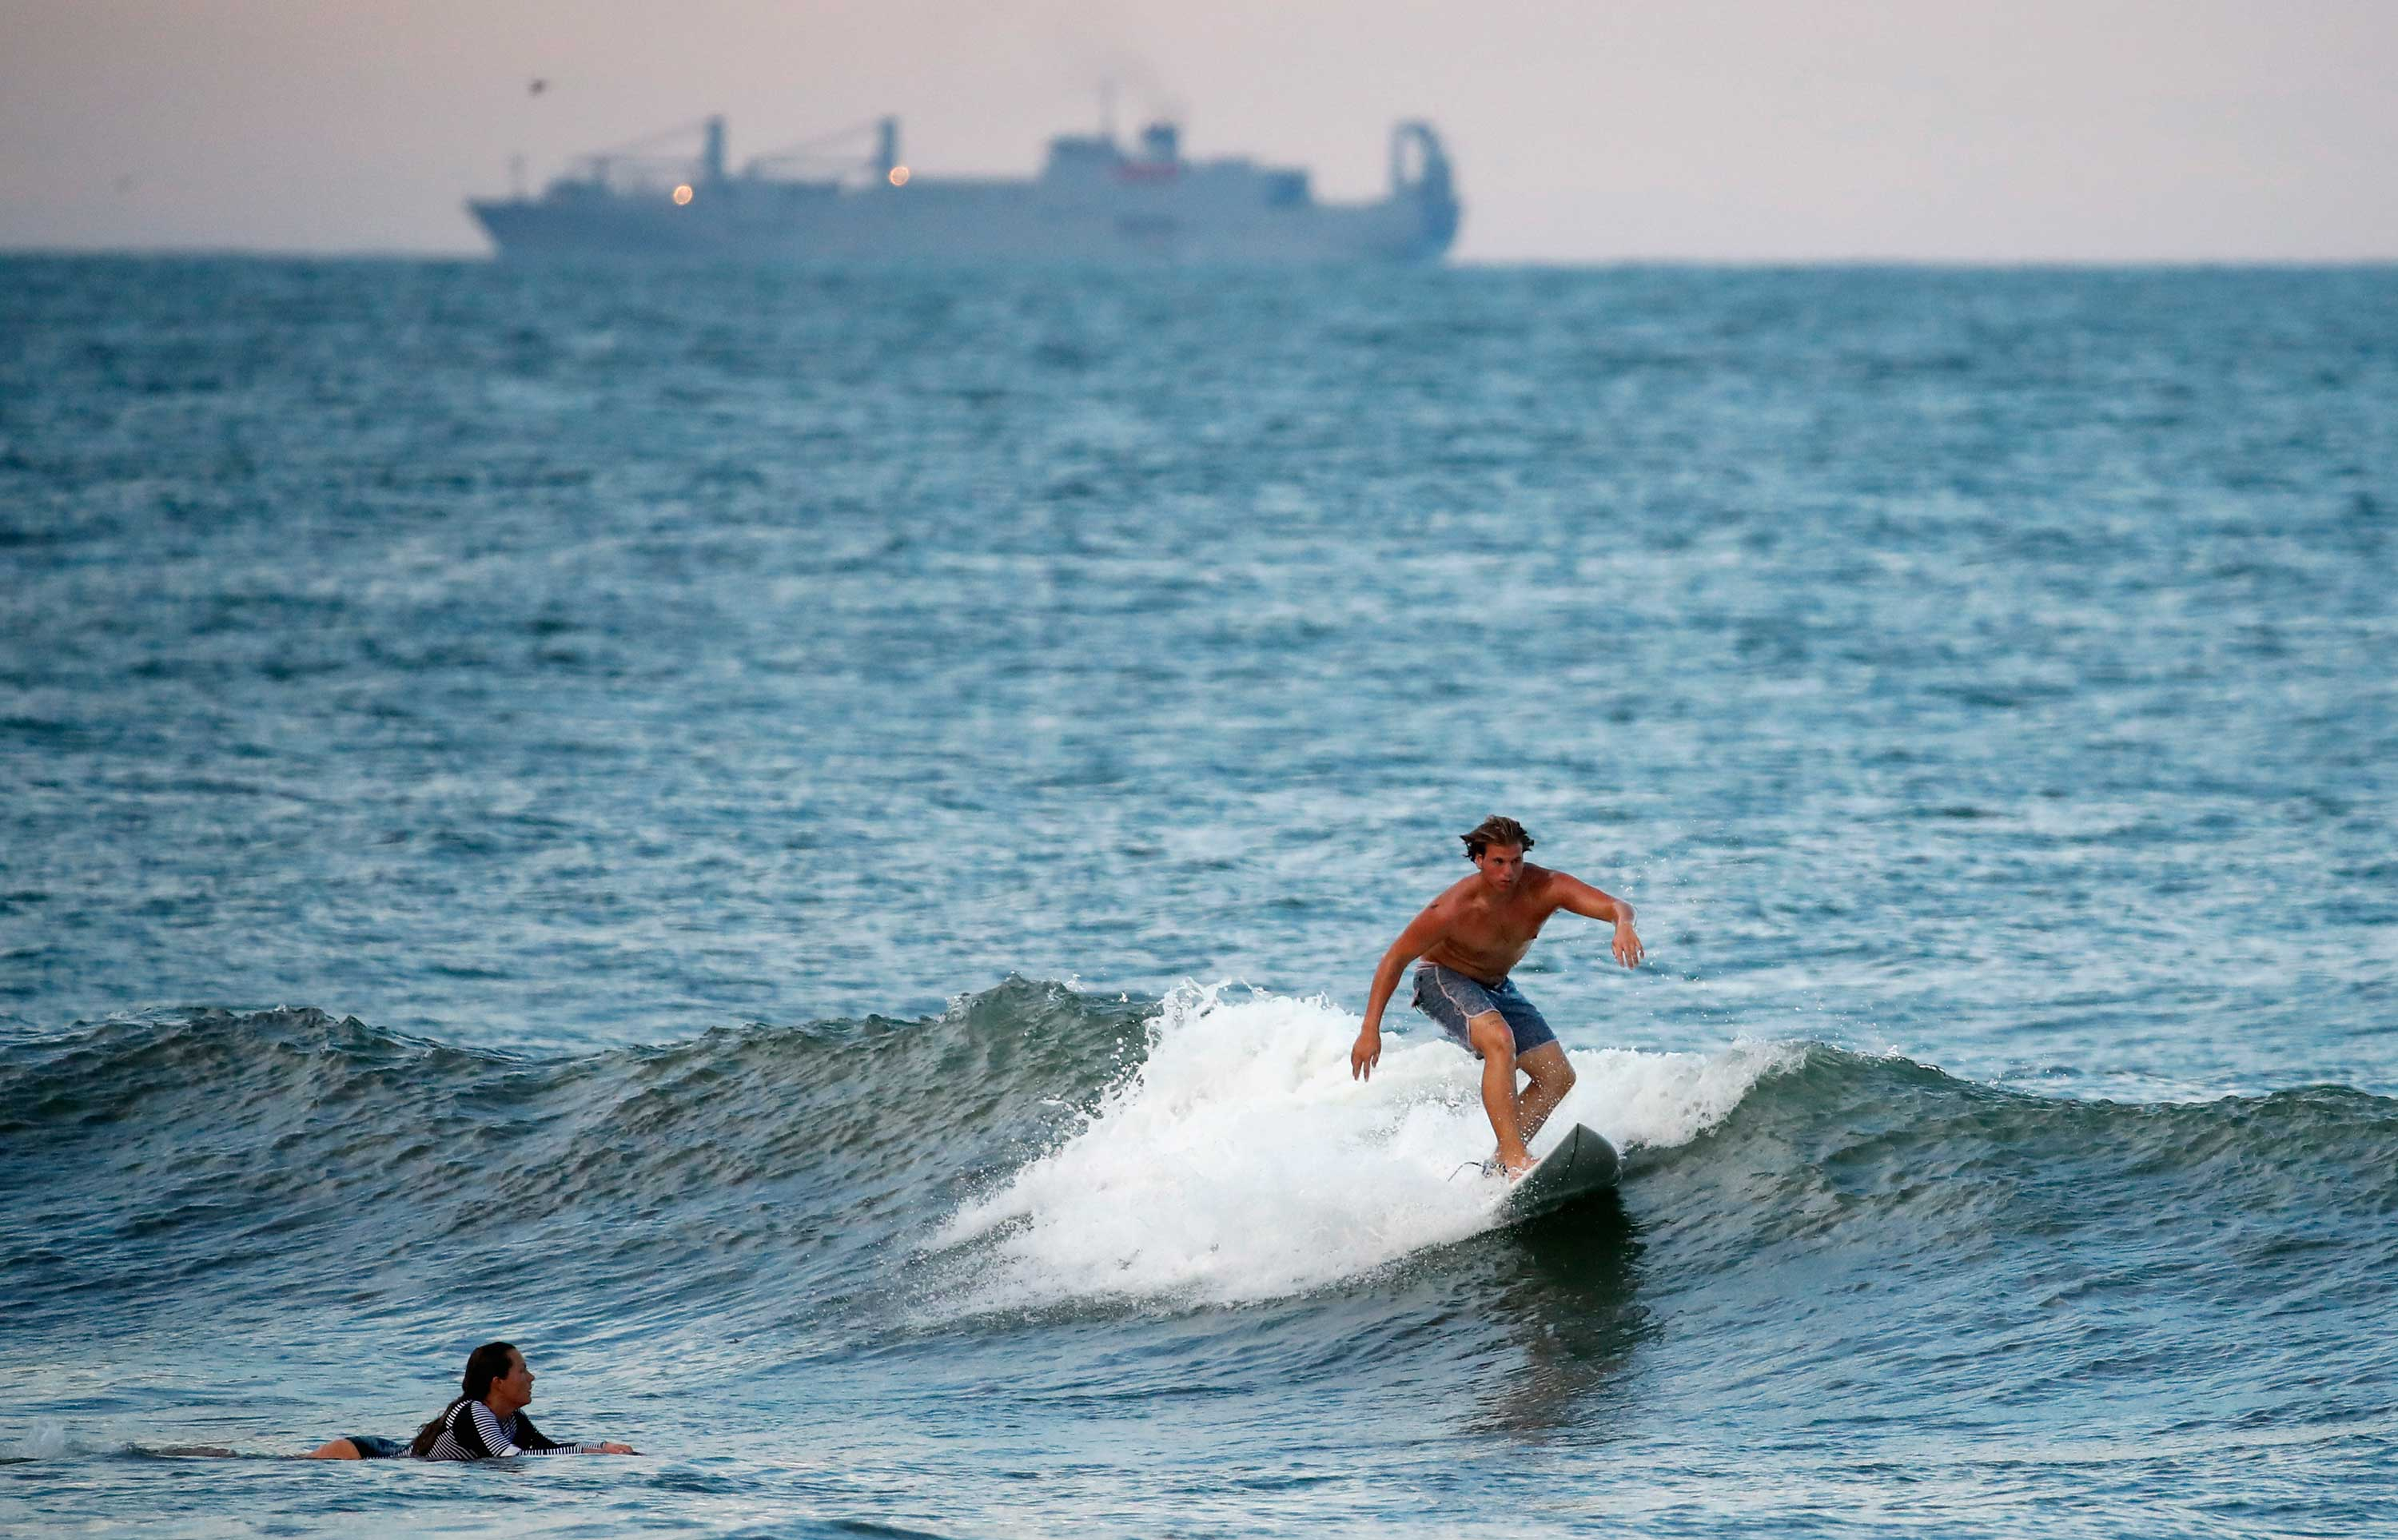 "<div class=""meta image-caption""><div class=""origin-logo origin-image none""><span>none</span></div><span class=""caption-text"">A surfer catches a wave with a navy ship behind him, Tuesday, Sept. 11, 2018, in Virginia Beach, Va. (Alex Brandon/AP Photo)</span></div>"